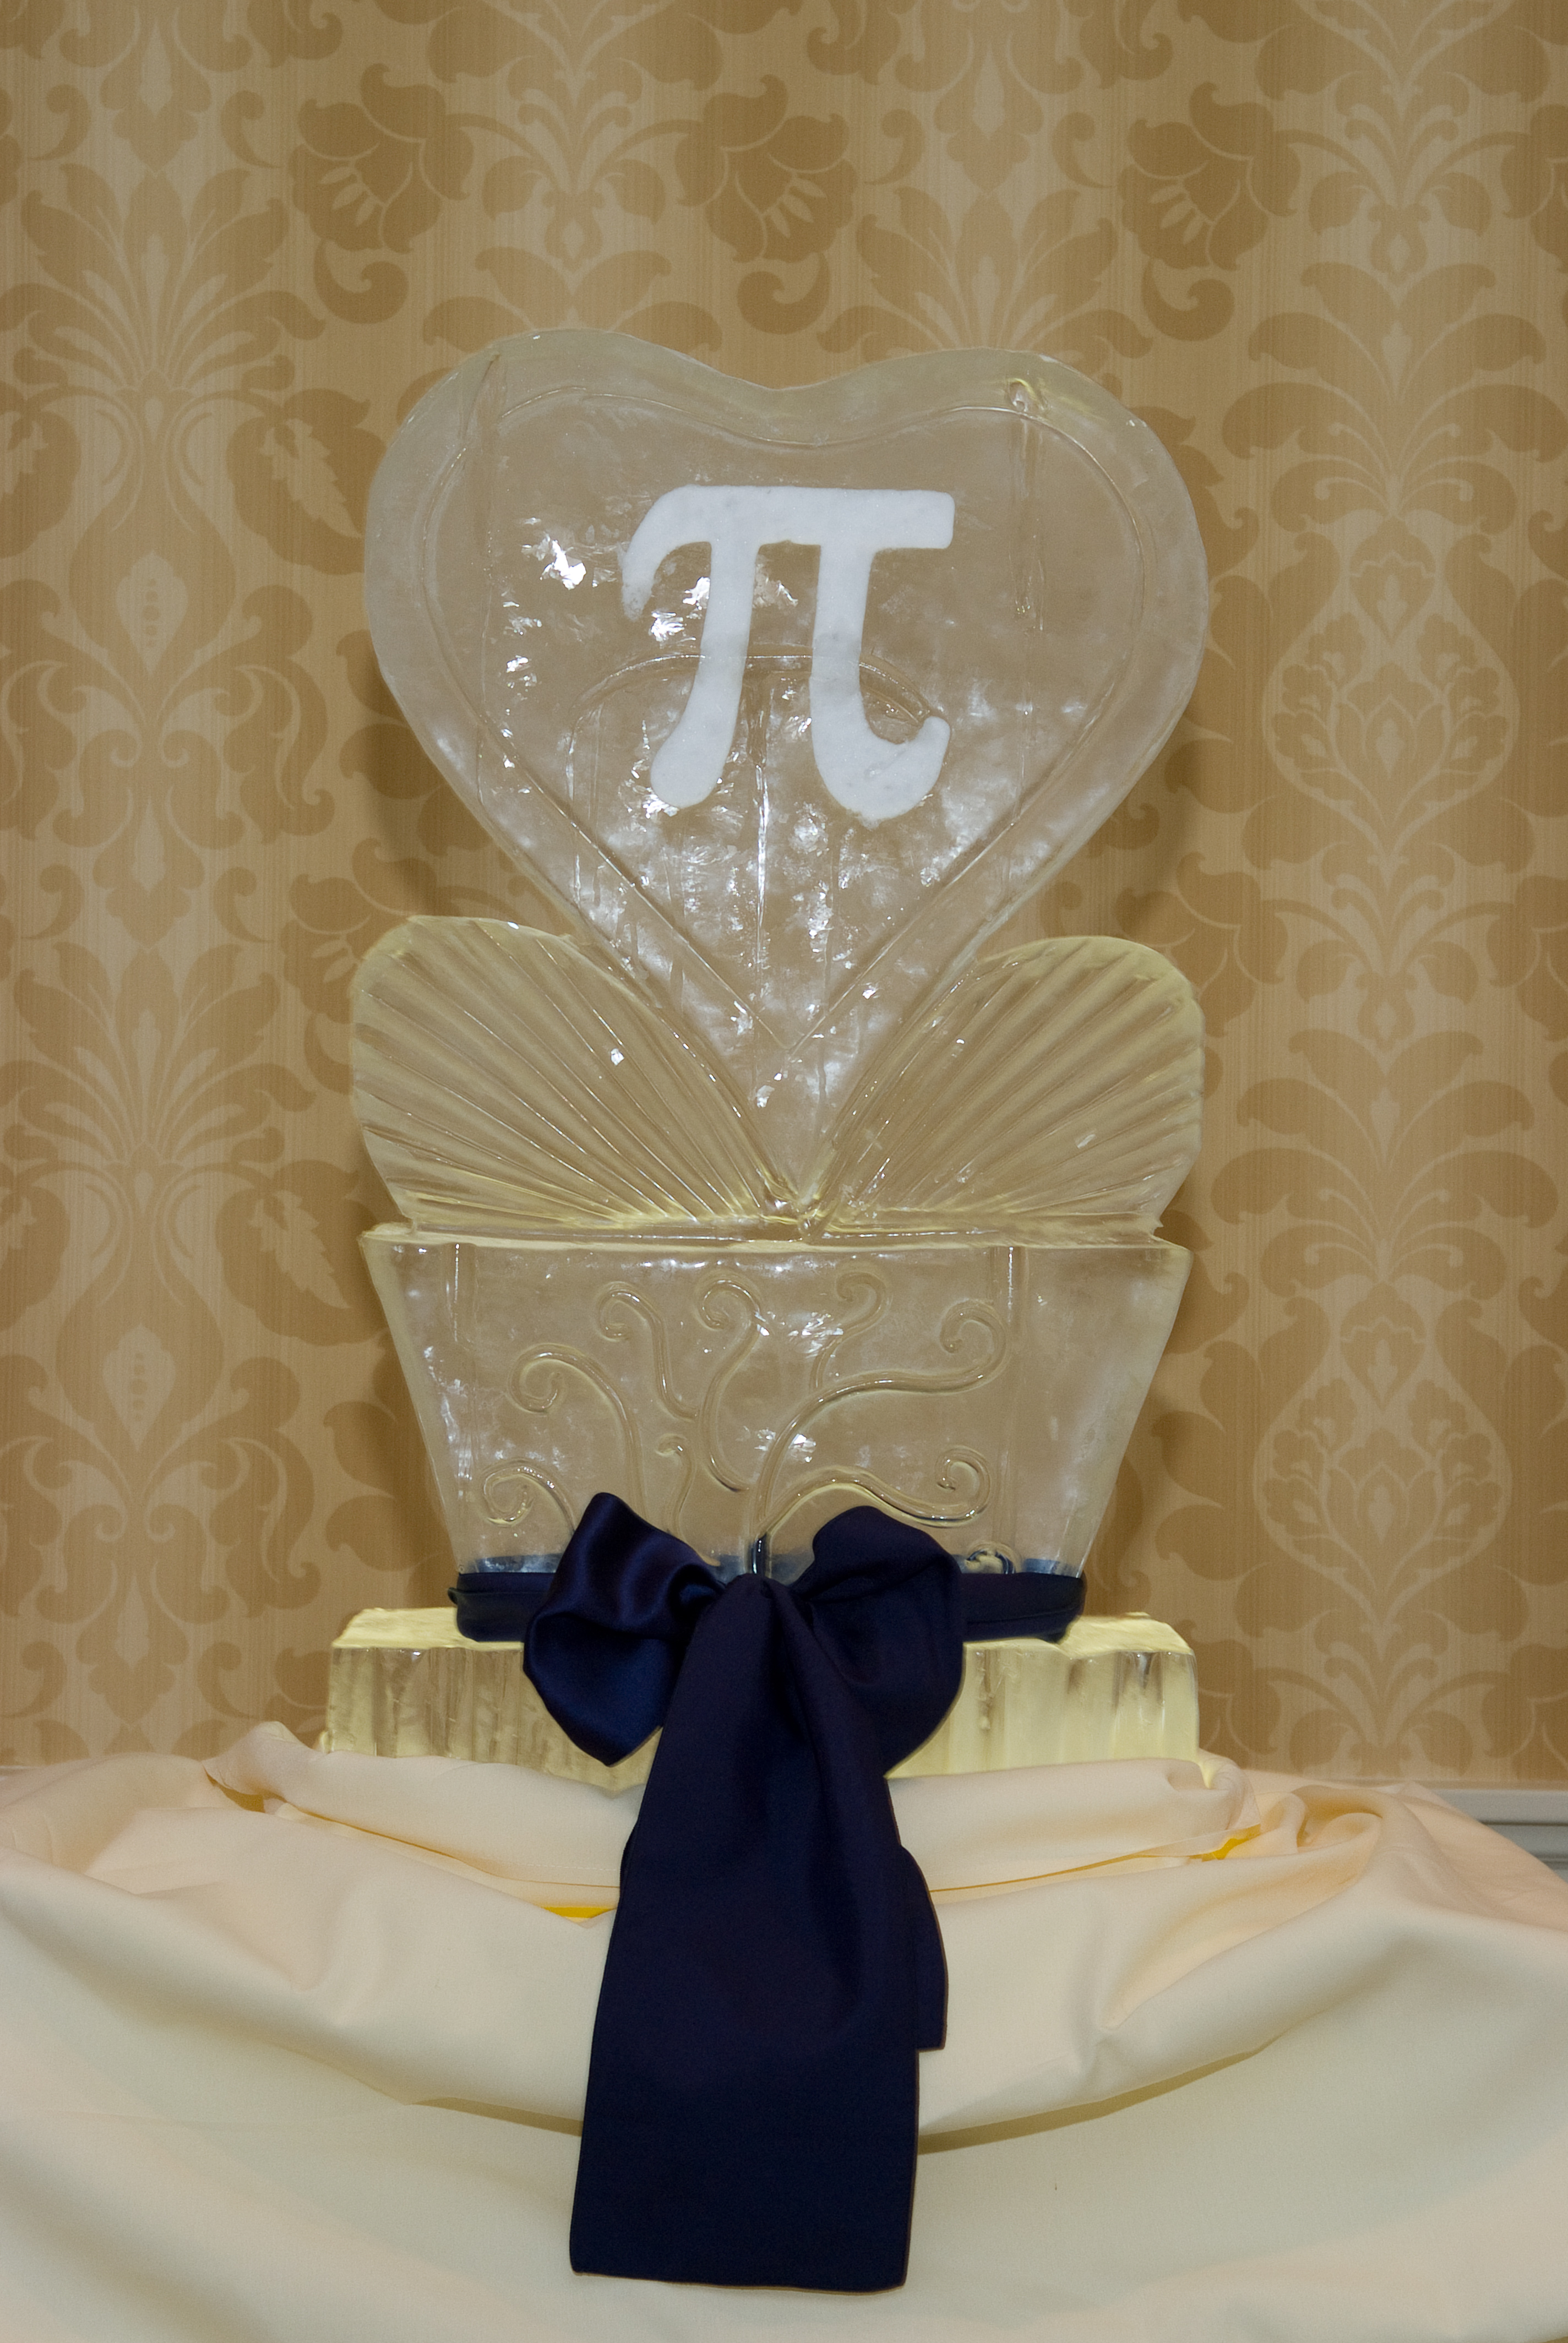 Pi Ice Sculpture